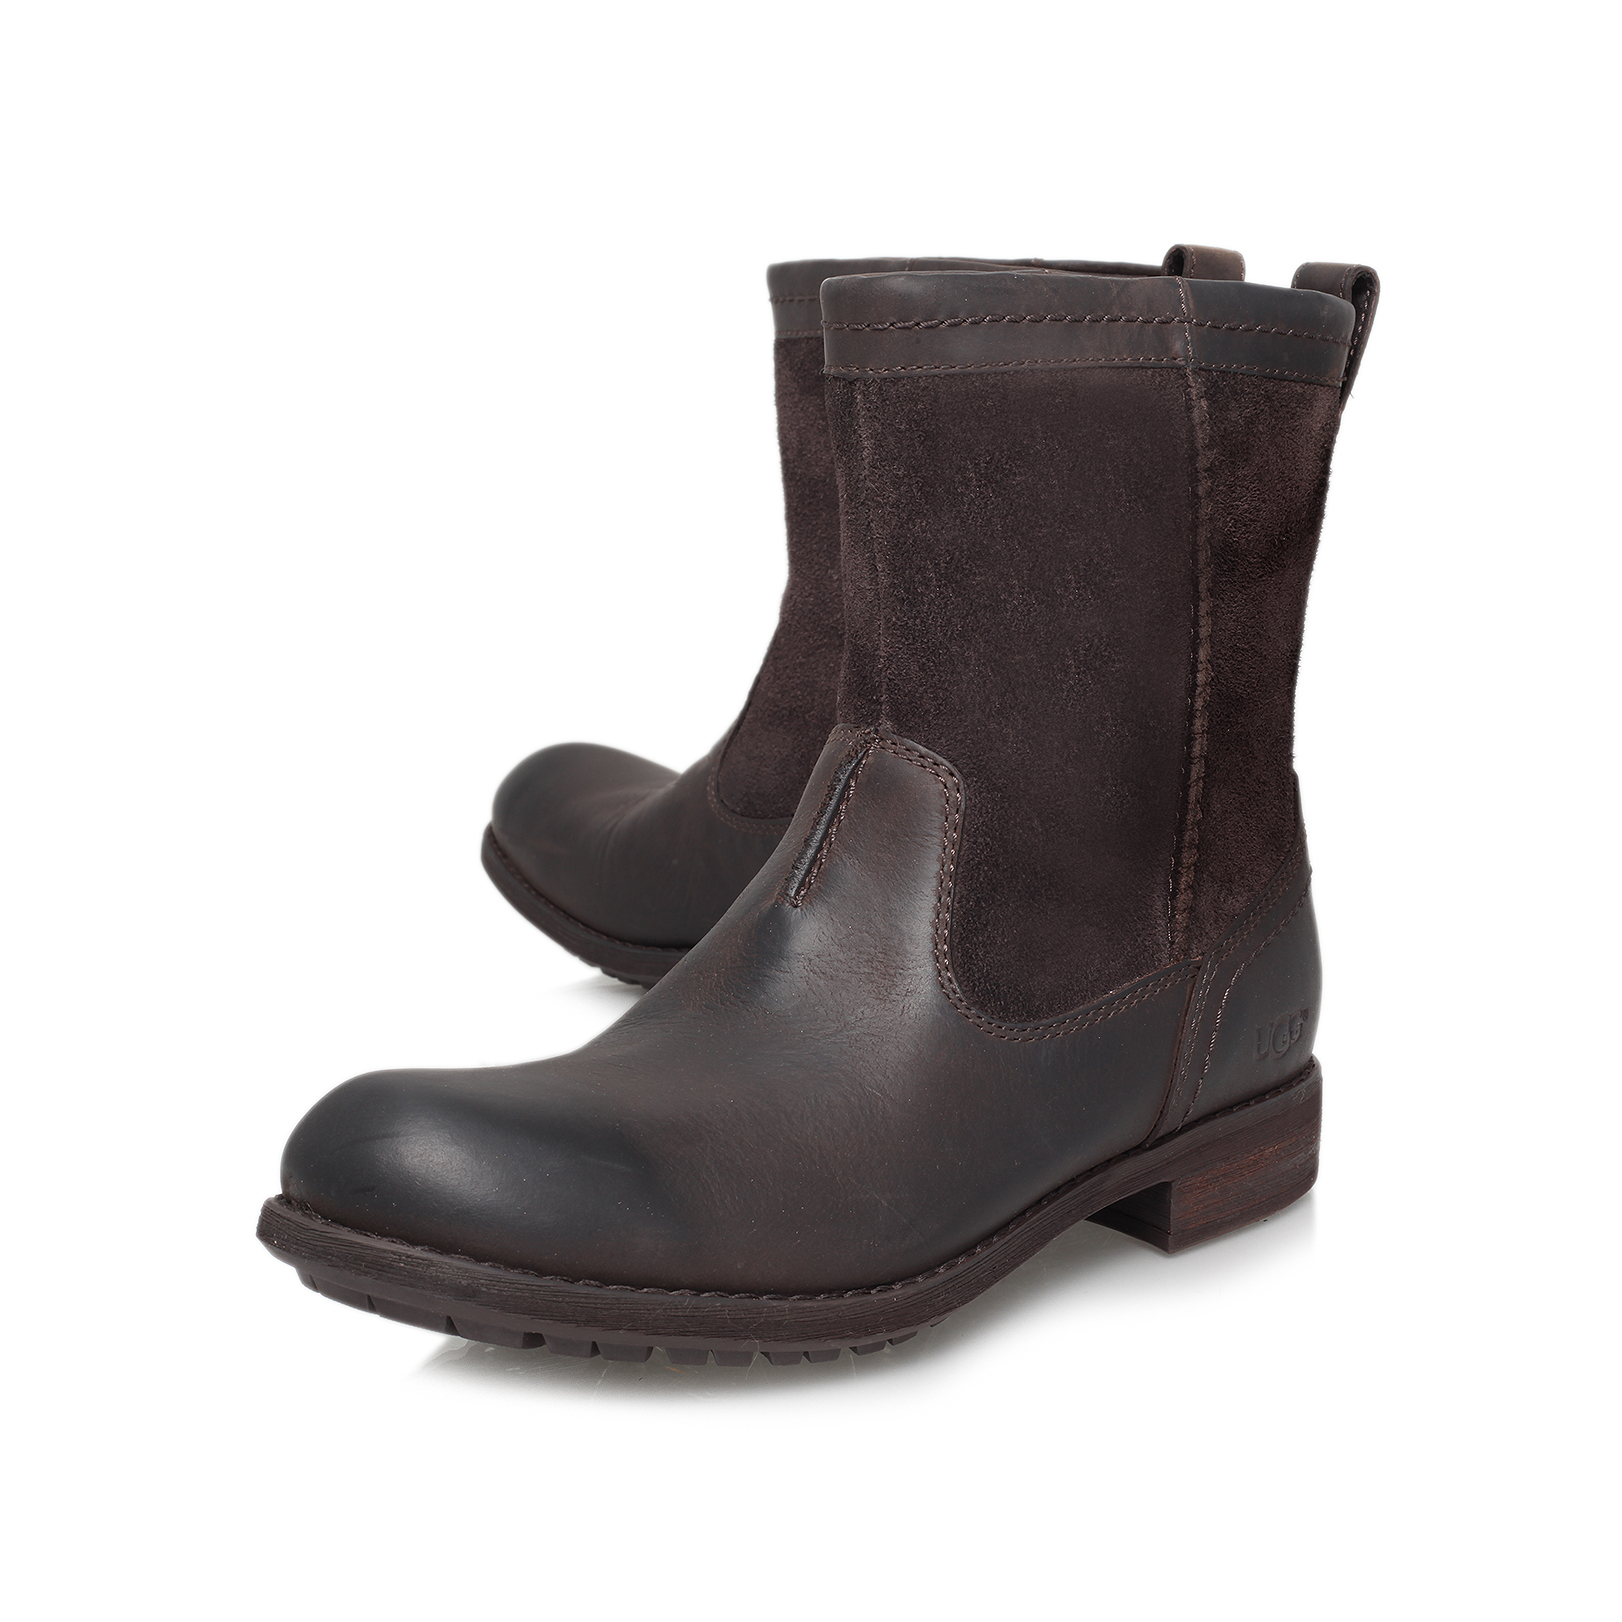 LERETTE FUR PULL BOOT Ugg Lerette Brown Leather Fur Pull Boots by UGG AUSTRALIA